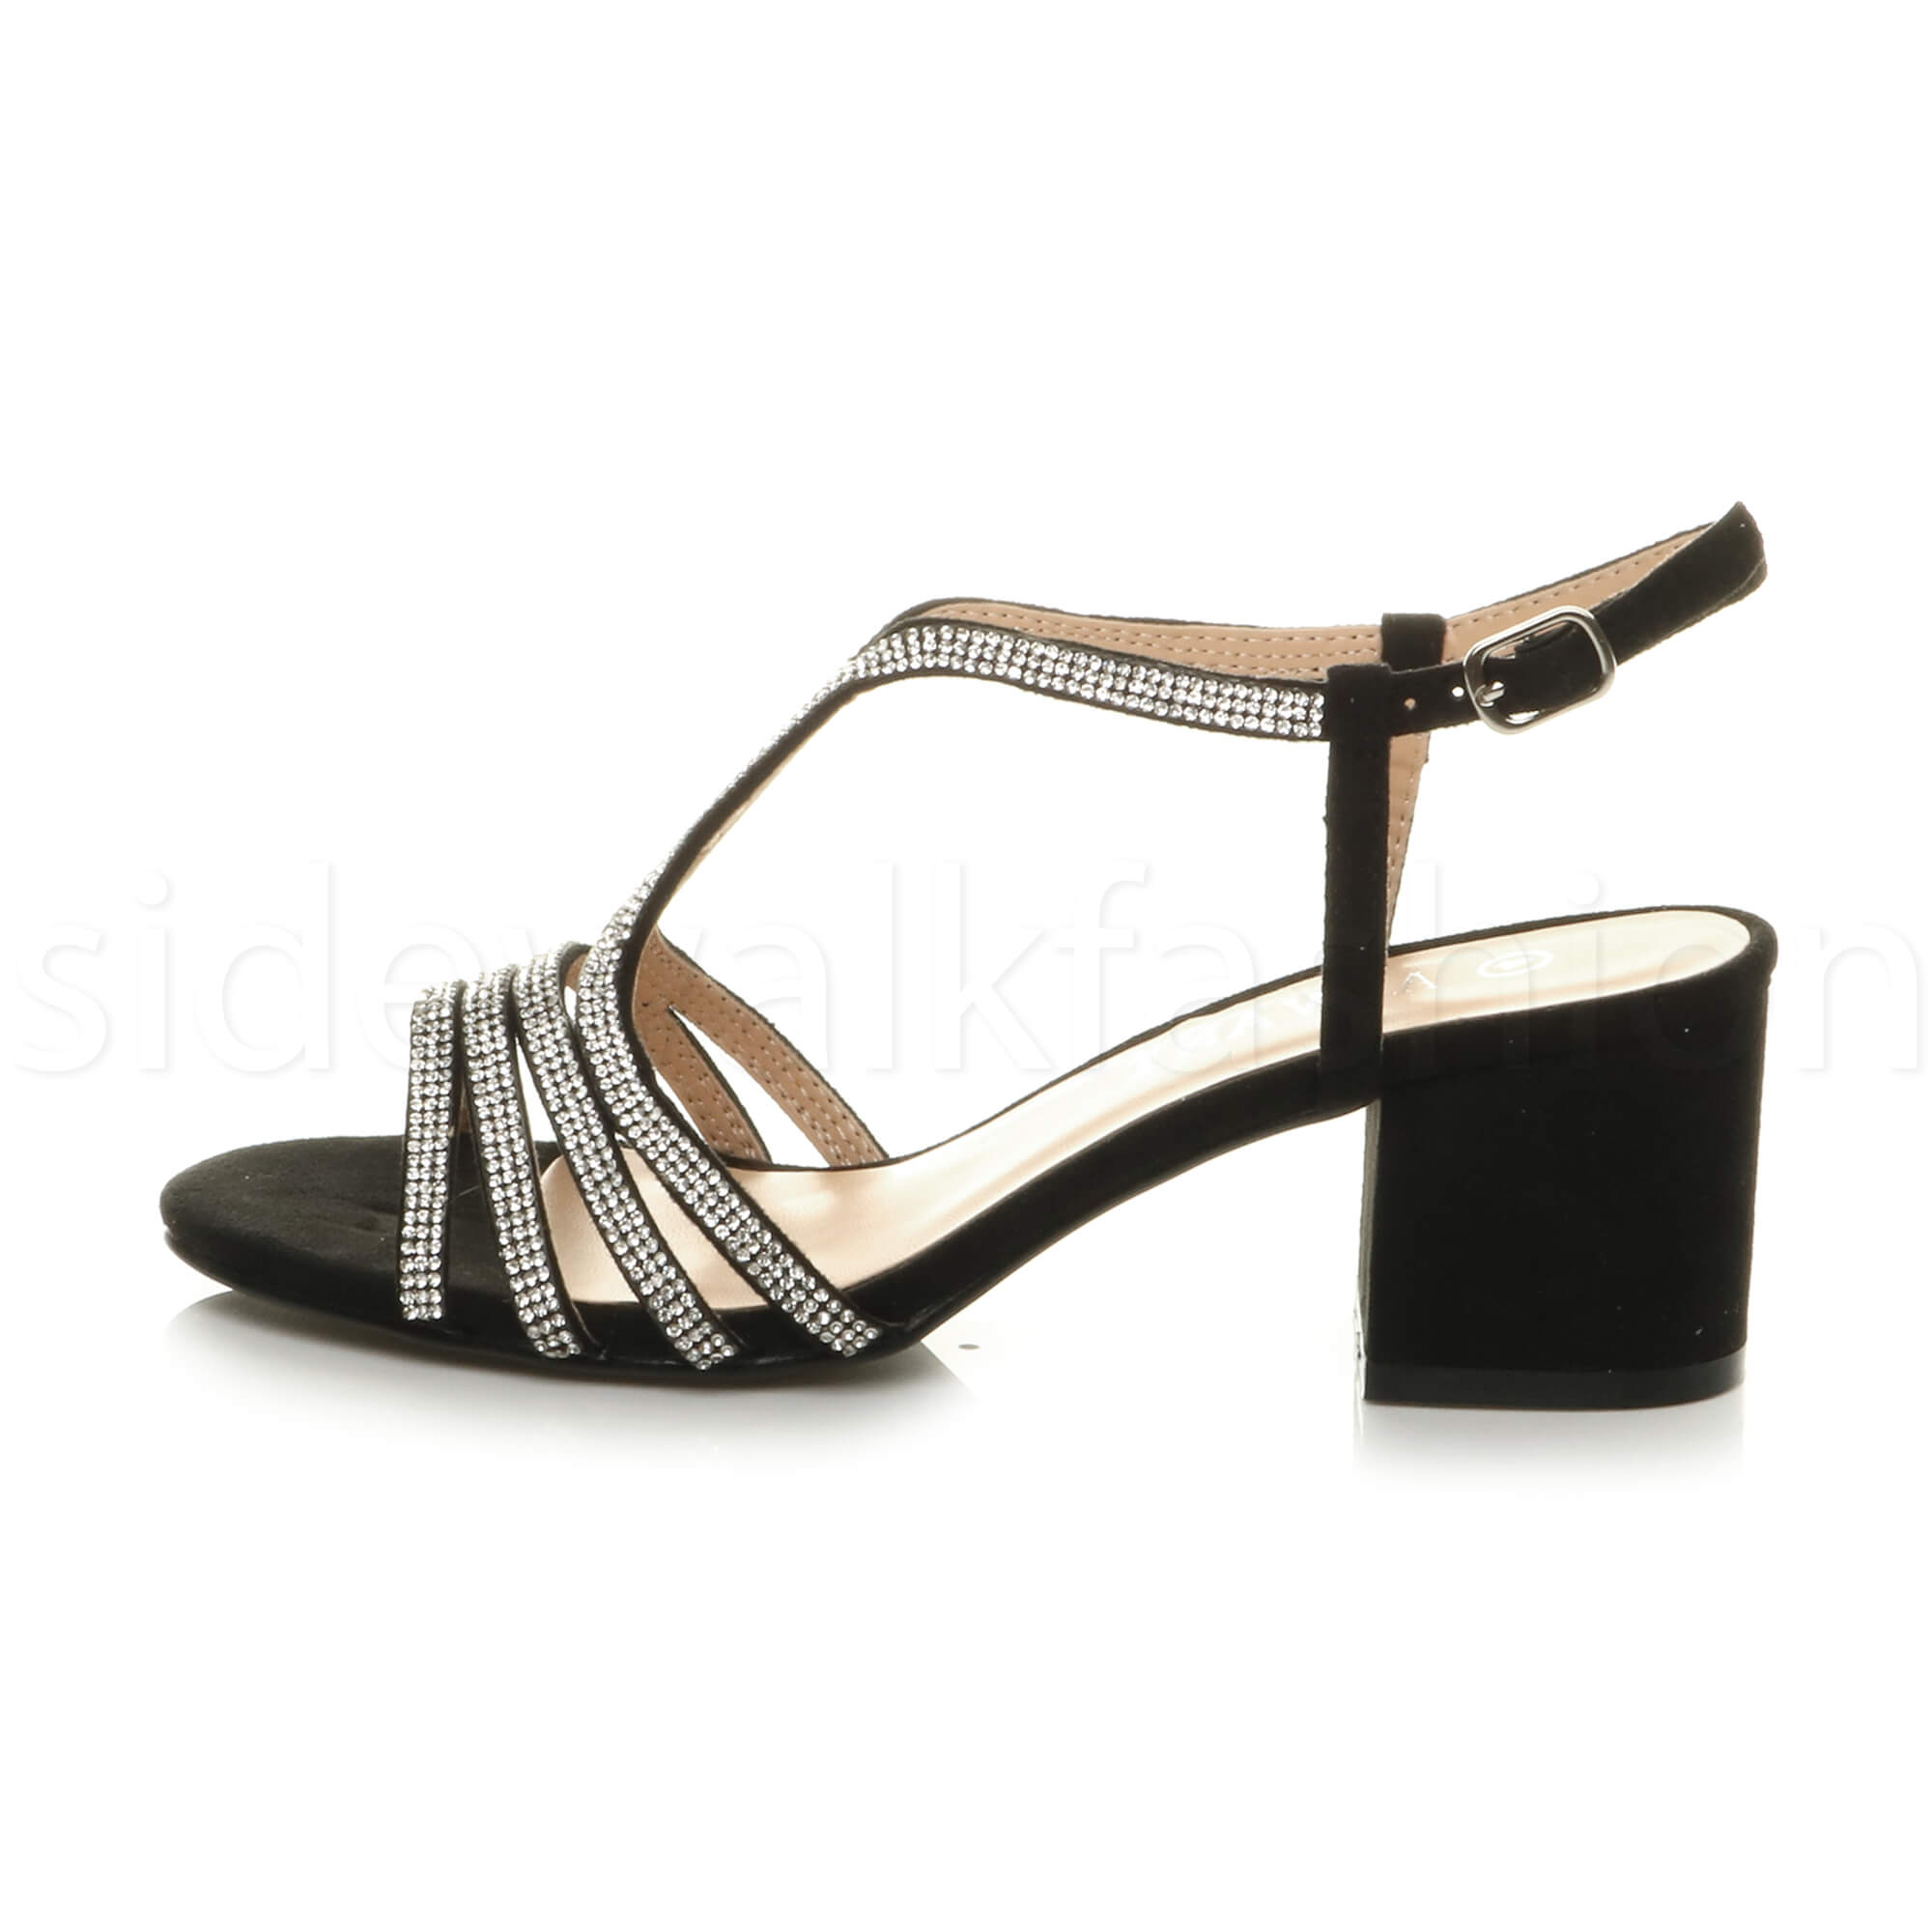 5ace2f041a09 Womens ladies mid heel T-Bar strappy diamante sparkly prom wedding ...